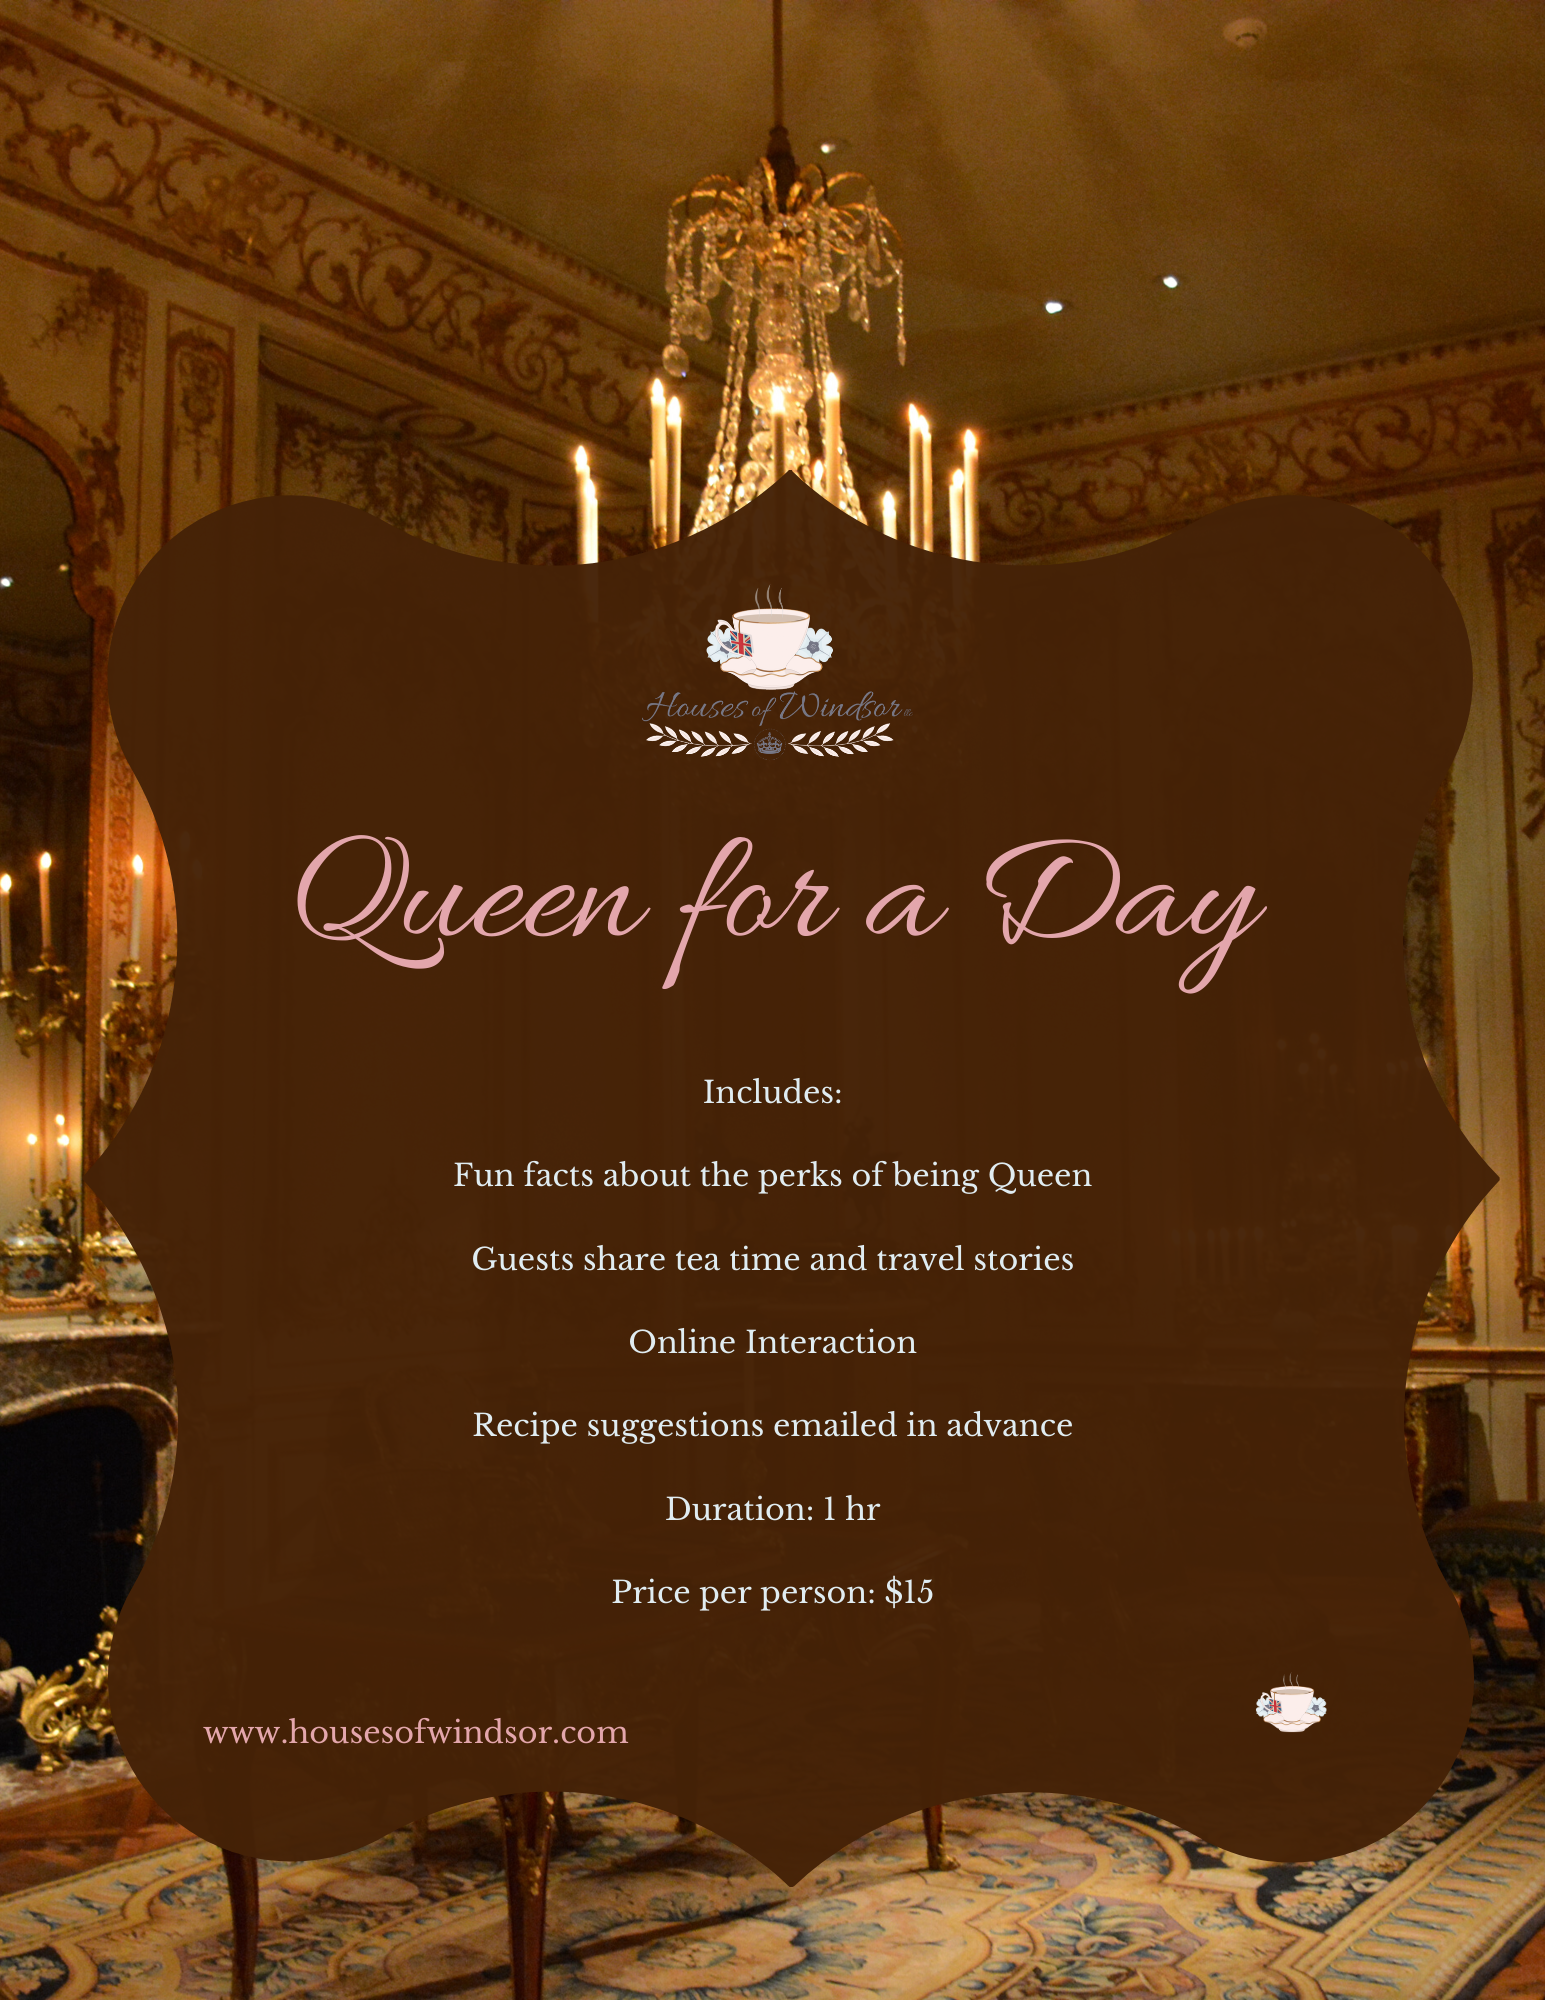 Queen for a Day theme